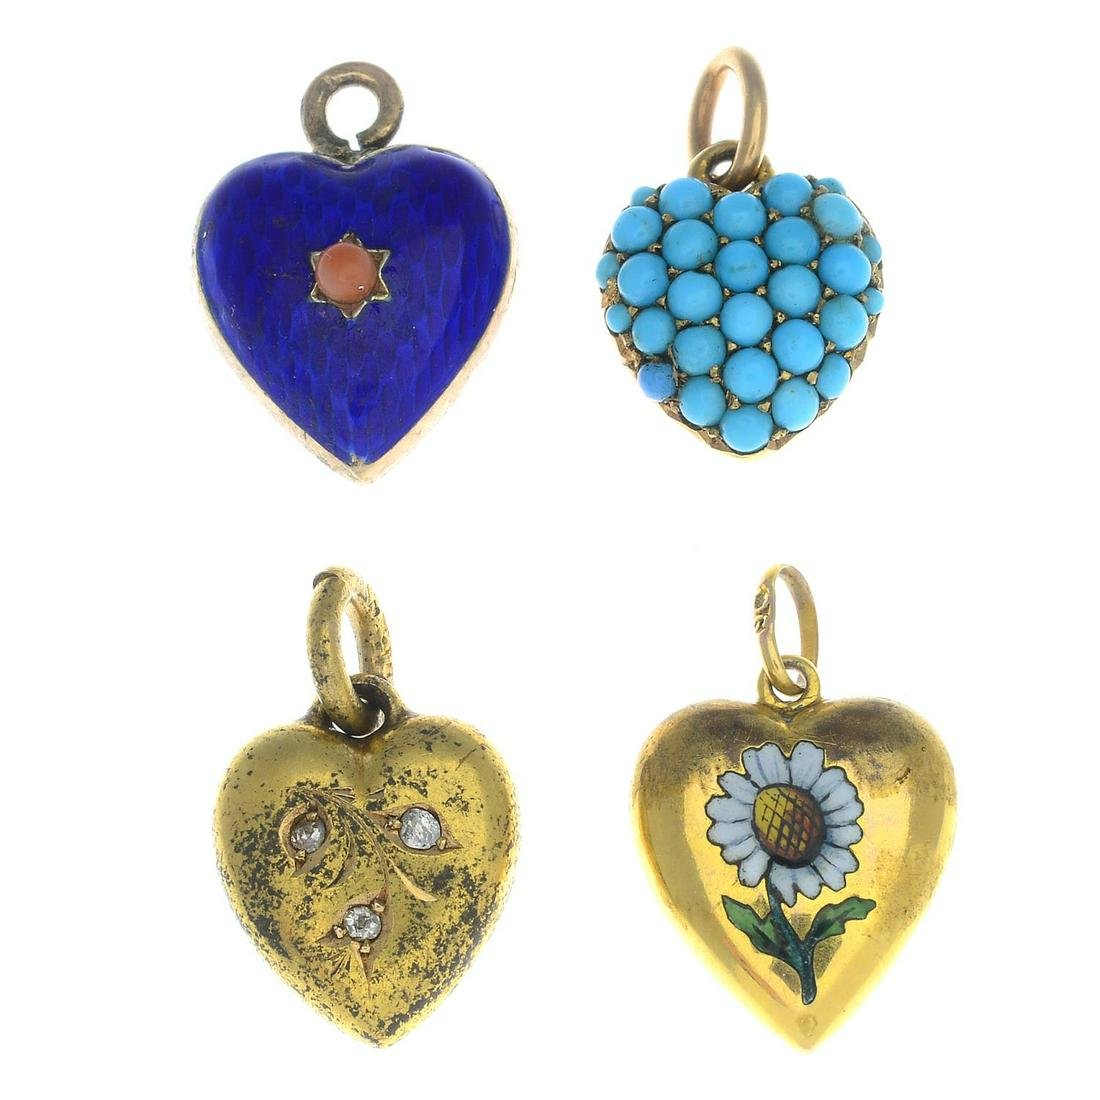 Four late Victorian to early 20th century gold enamel,